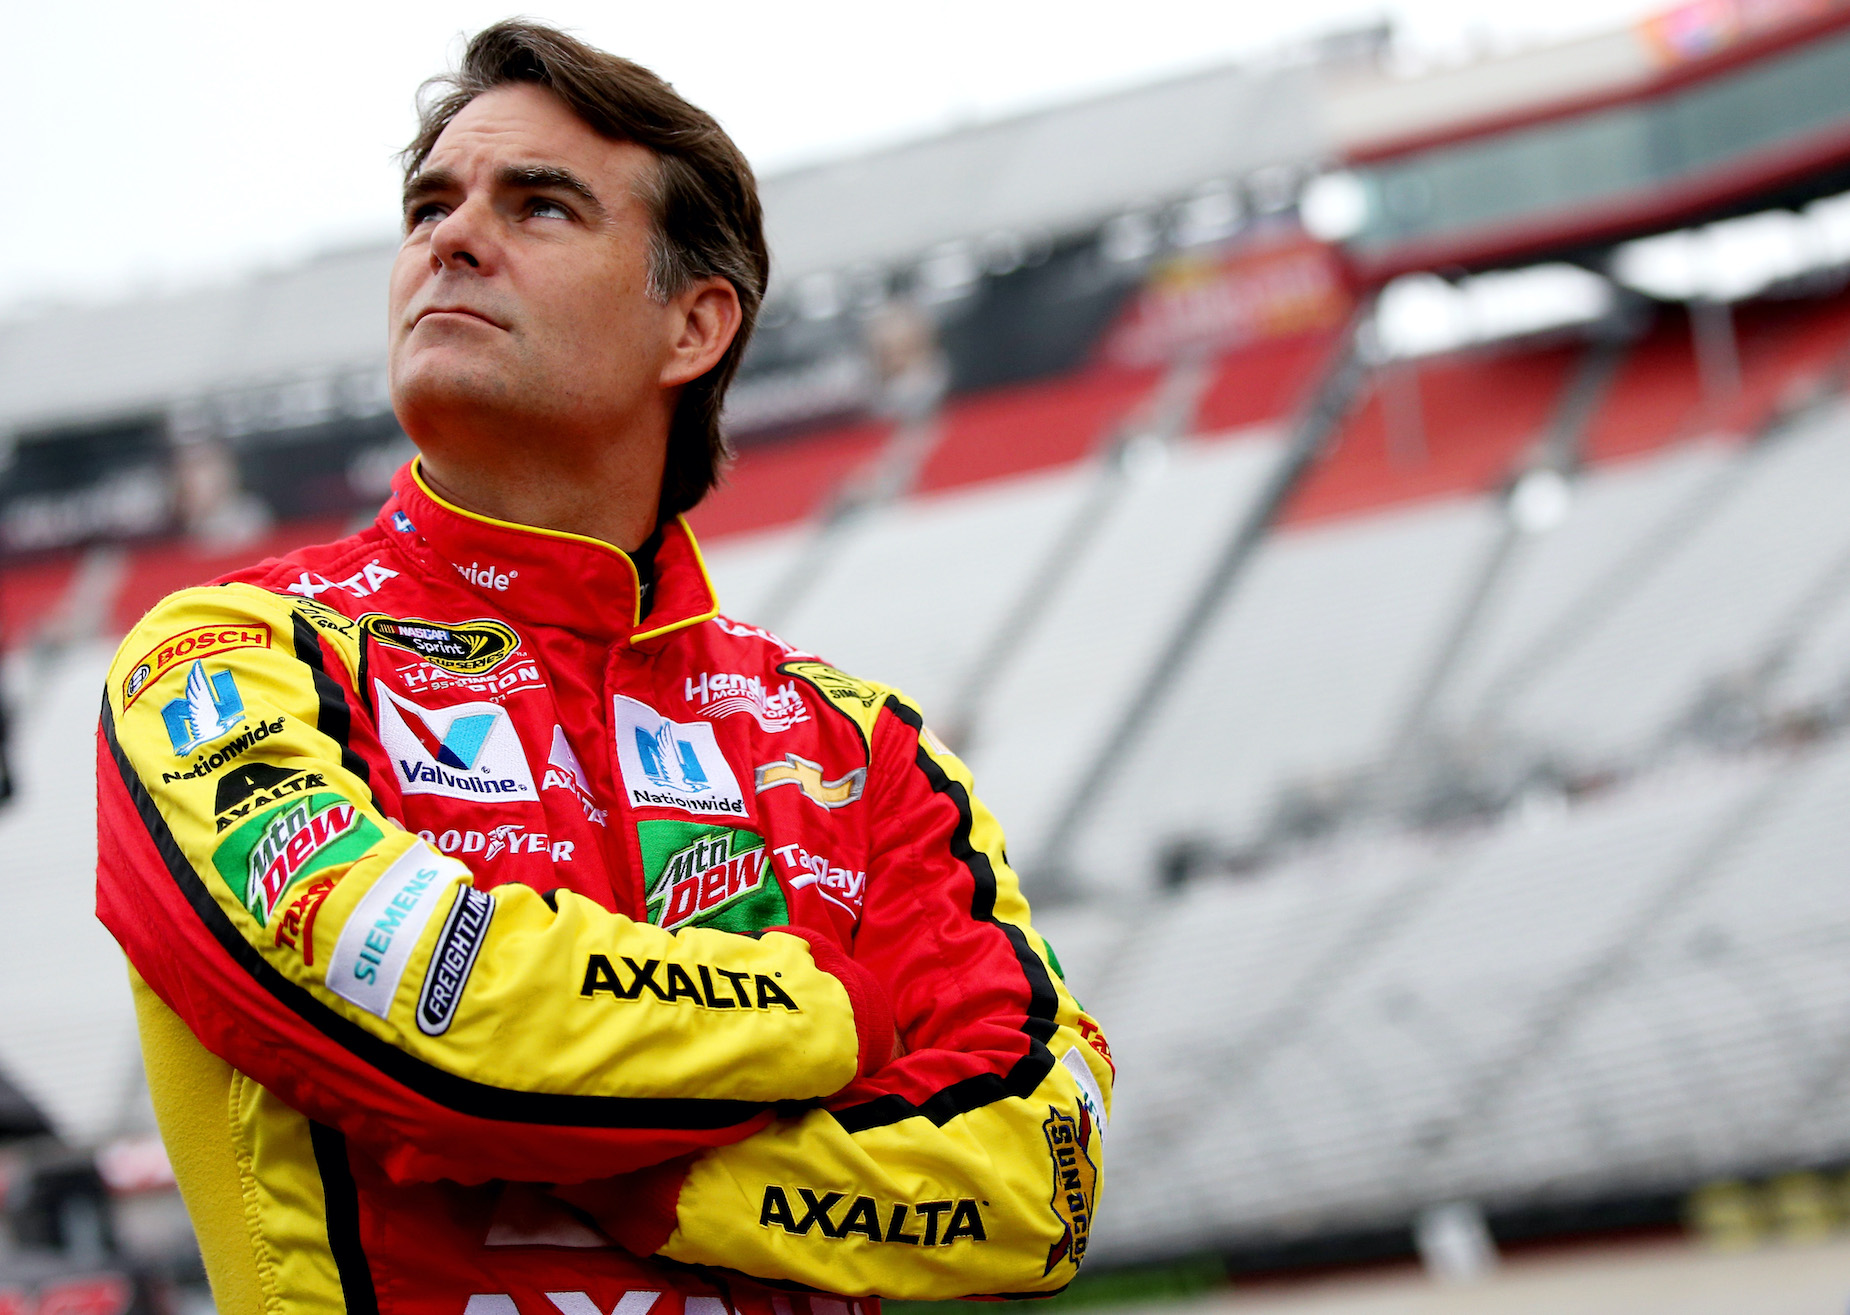 NASCAR star Jeff Gordon stands outside of his car during practice.